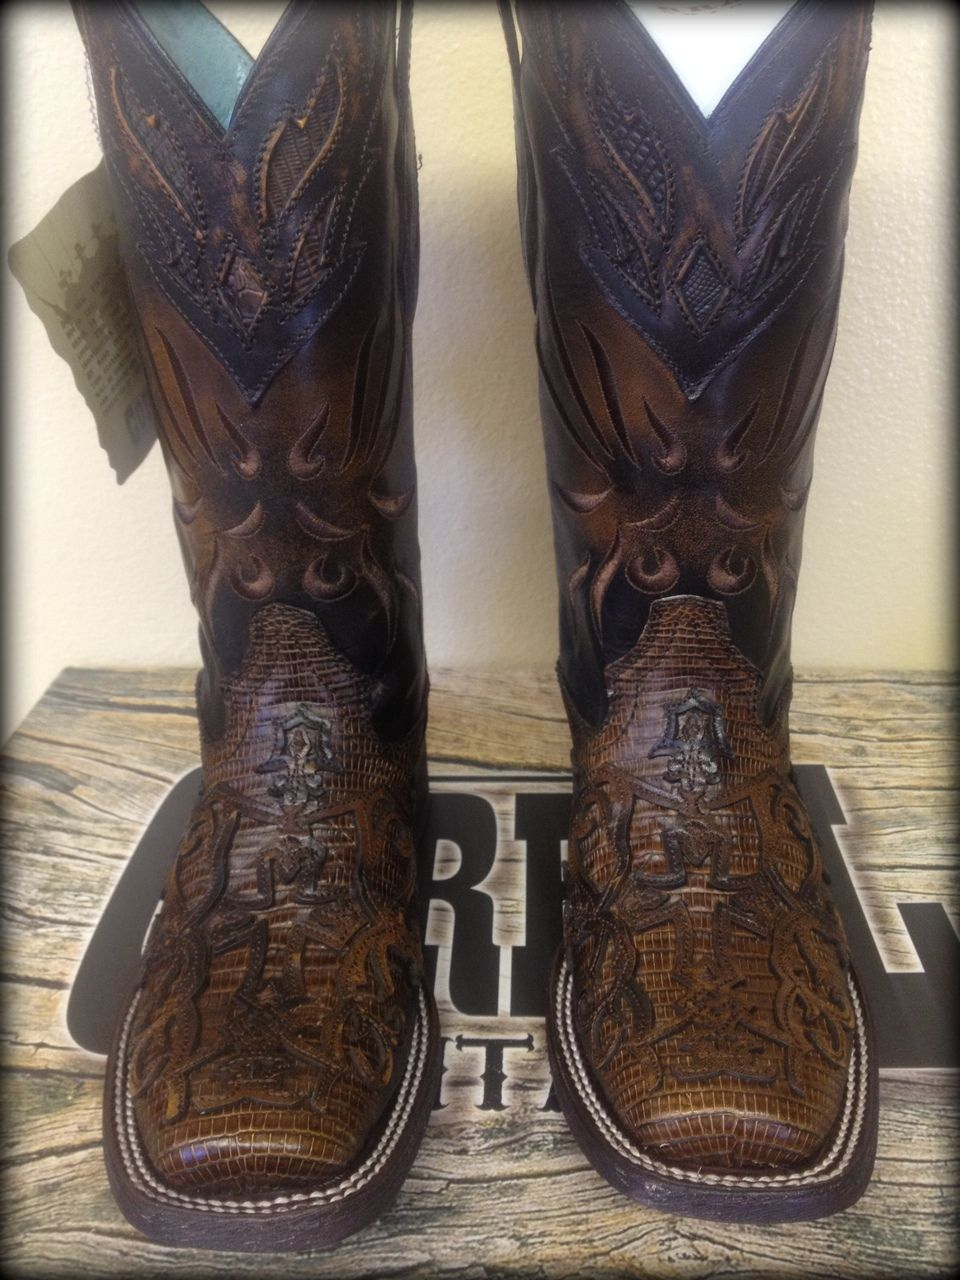 (http://www.fillyflair.com/corral-vintage-leather-lizard-inlay-square-toe-boots/)